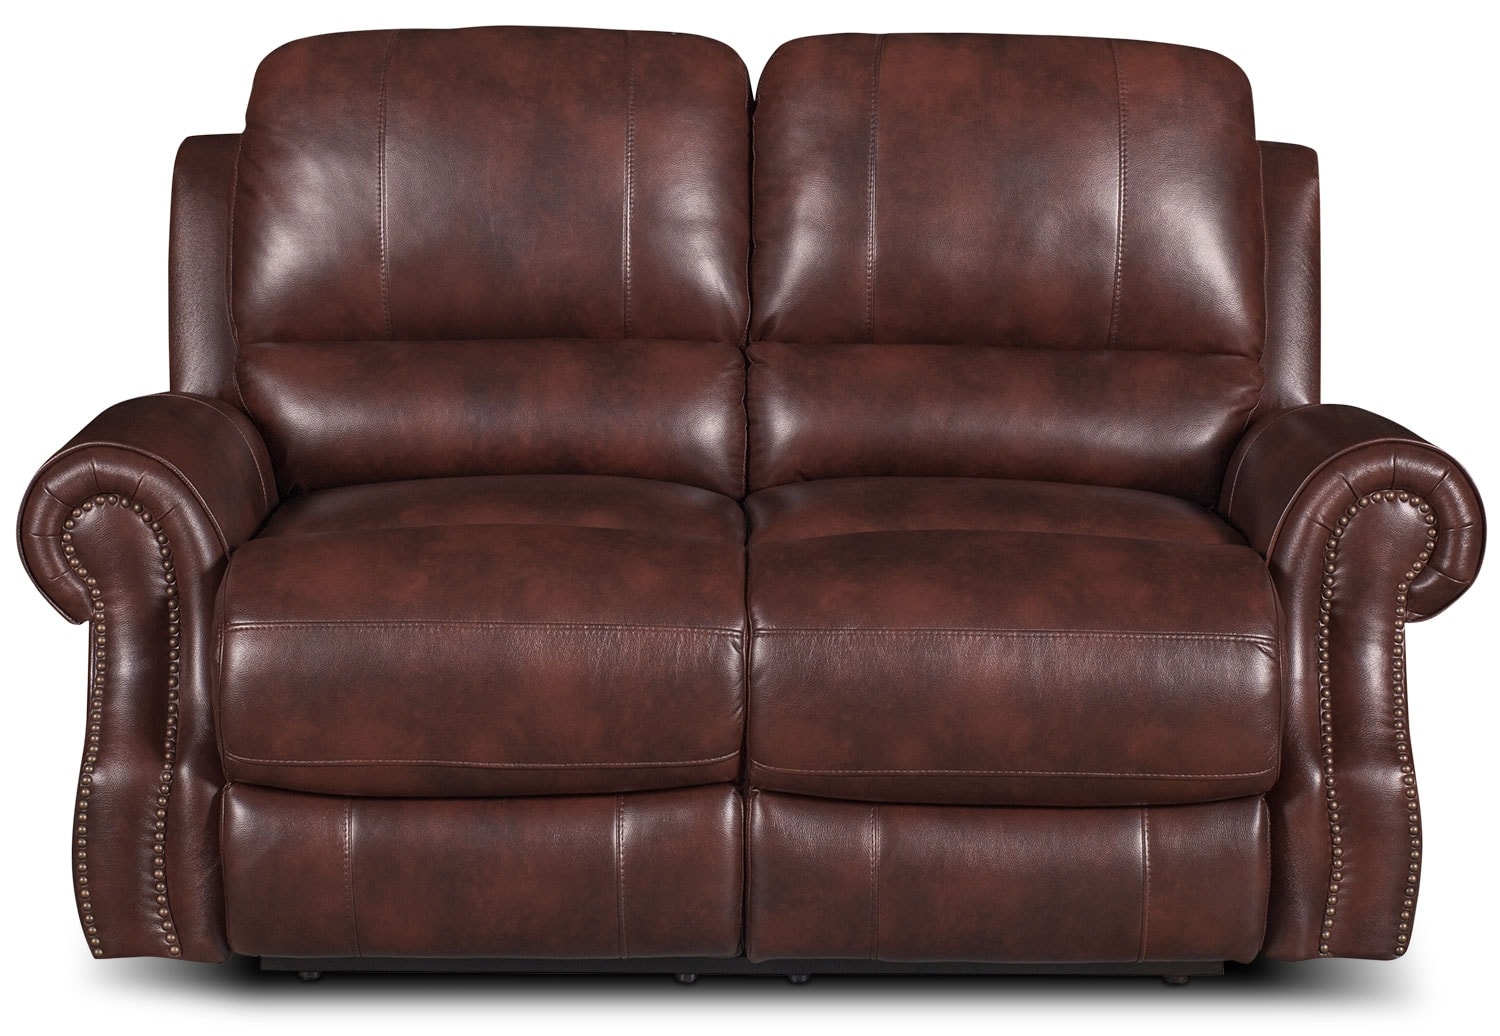 Living Room Furniture - Magnum Leather-Look Fabric Reclining Loveseat – Brown